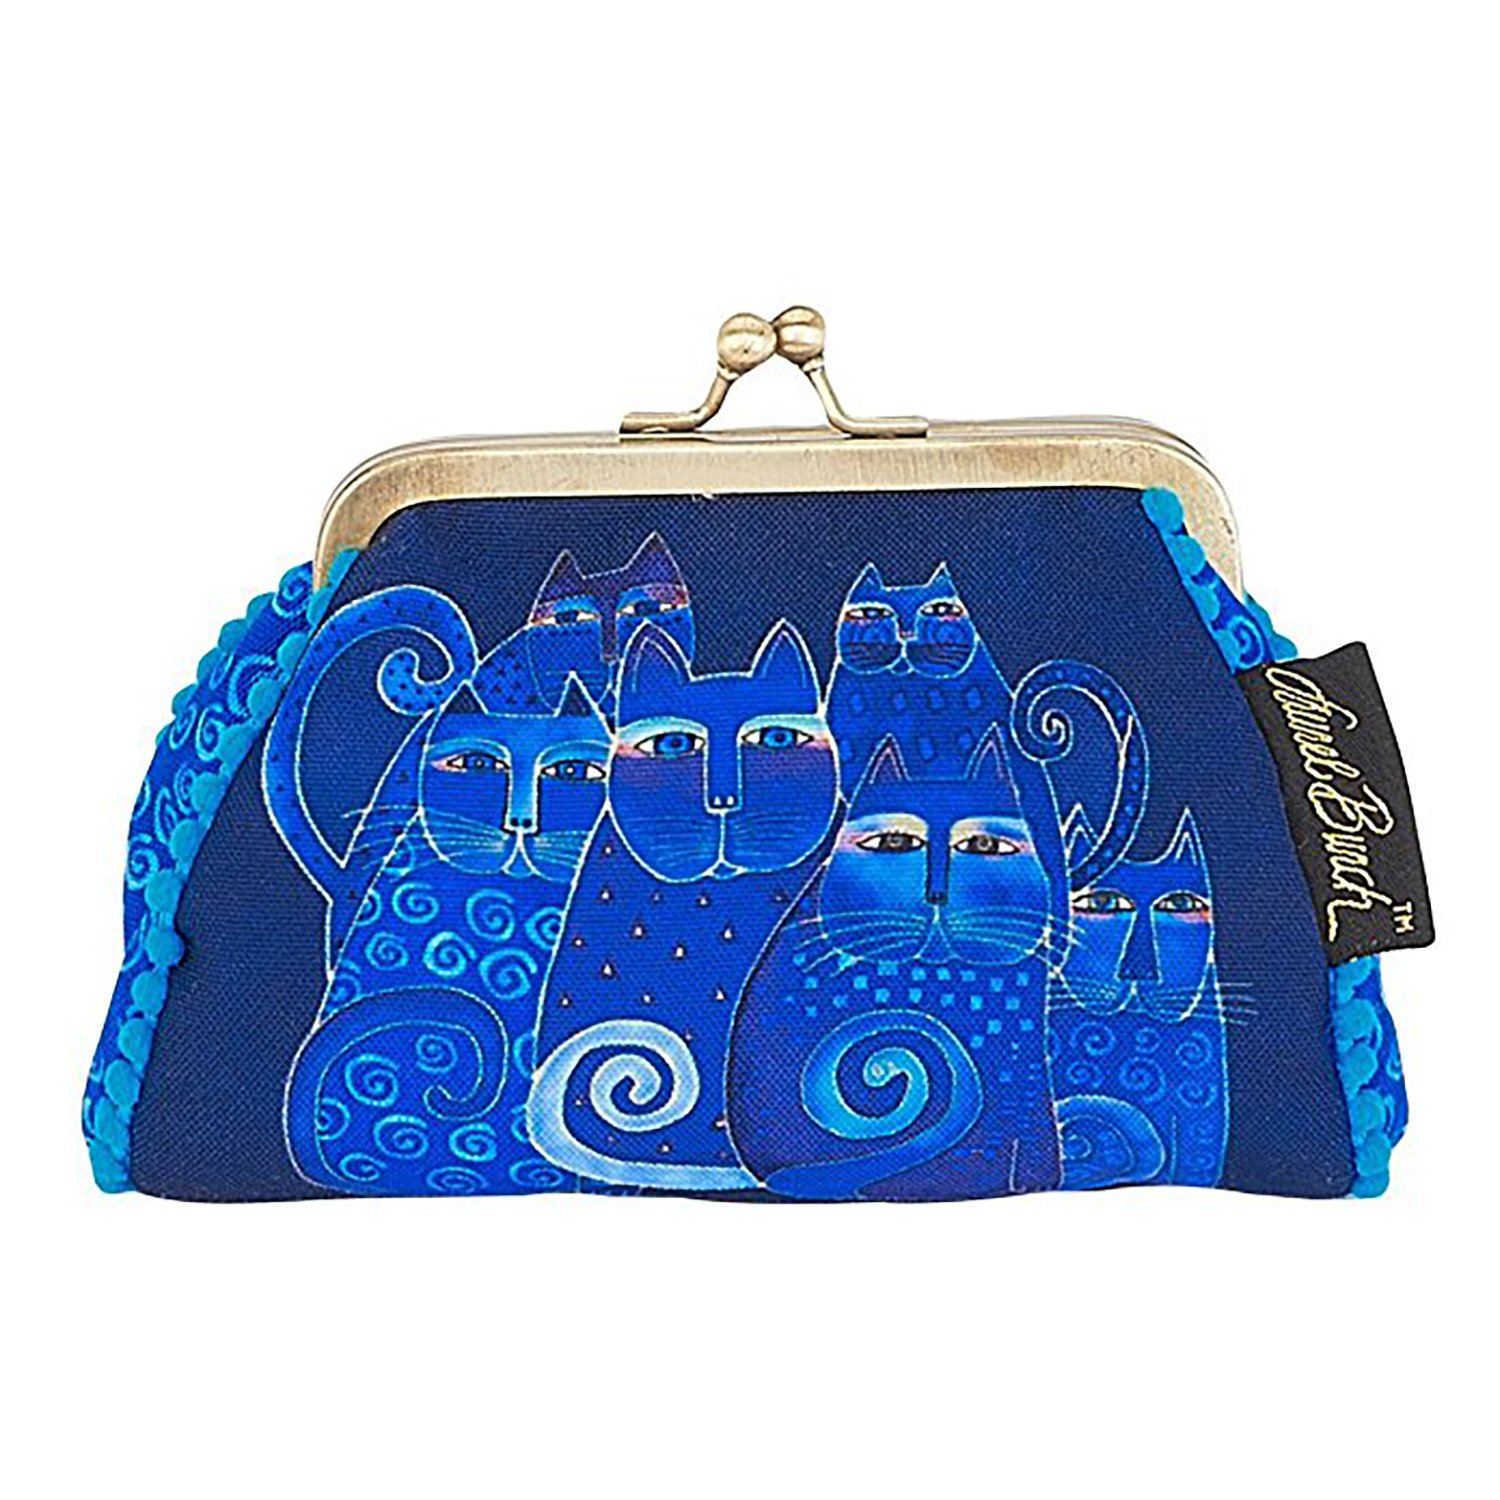 Laurel Burch Coin Purse Indigo Cats